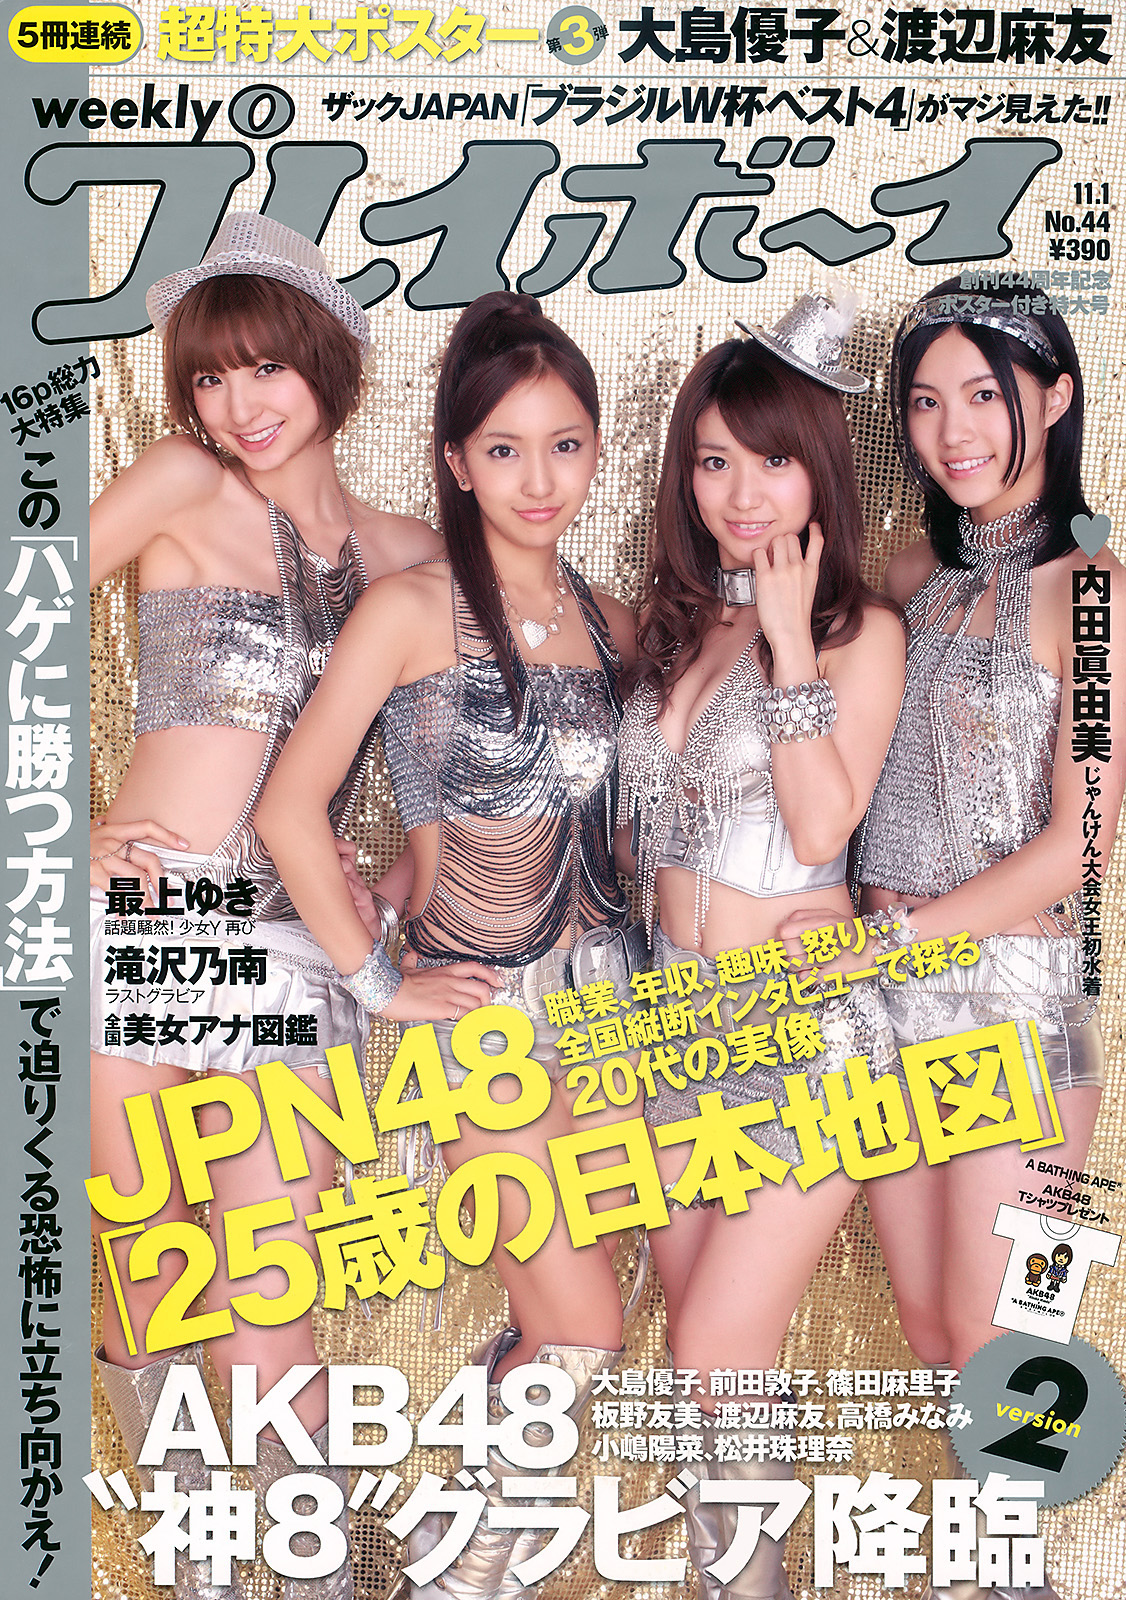 Weekly Playboy 2010 No.44 (AKB48) - idols